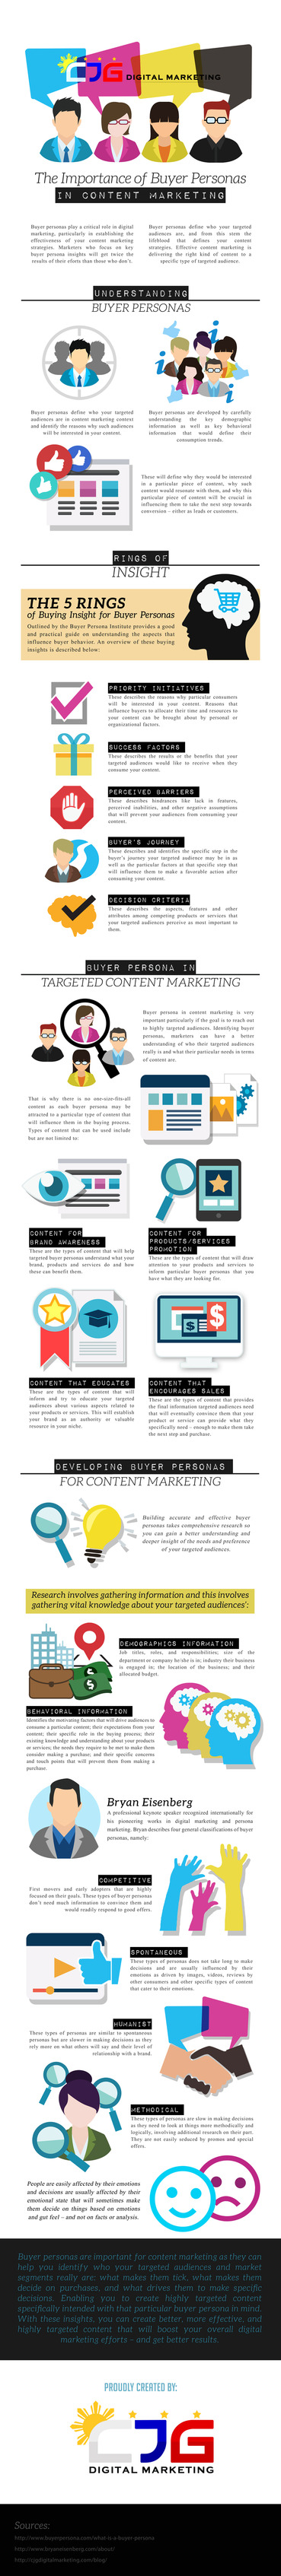 Content Marketing Buyer Personas In A Nutshell (Infographic)